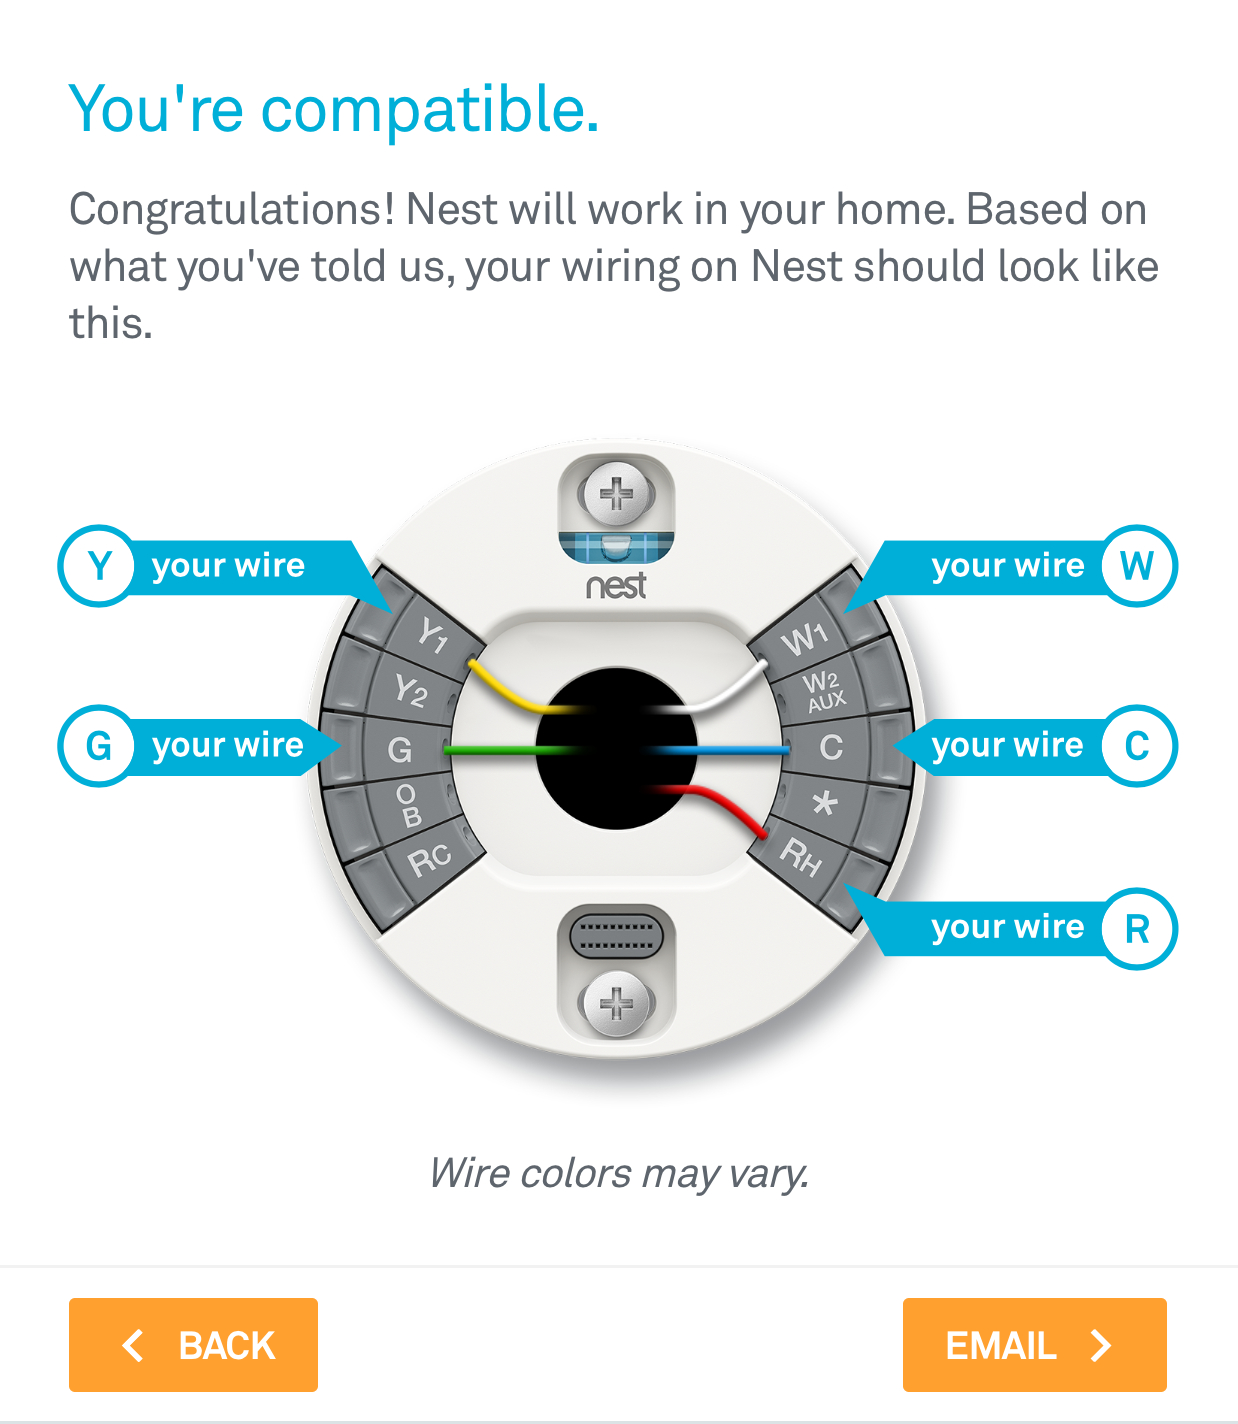 How To: Install The Nest Thermostat | The Craftsman Blog - Nest Thermostat Gen 2 Wiring Diagram